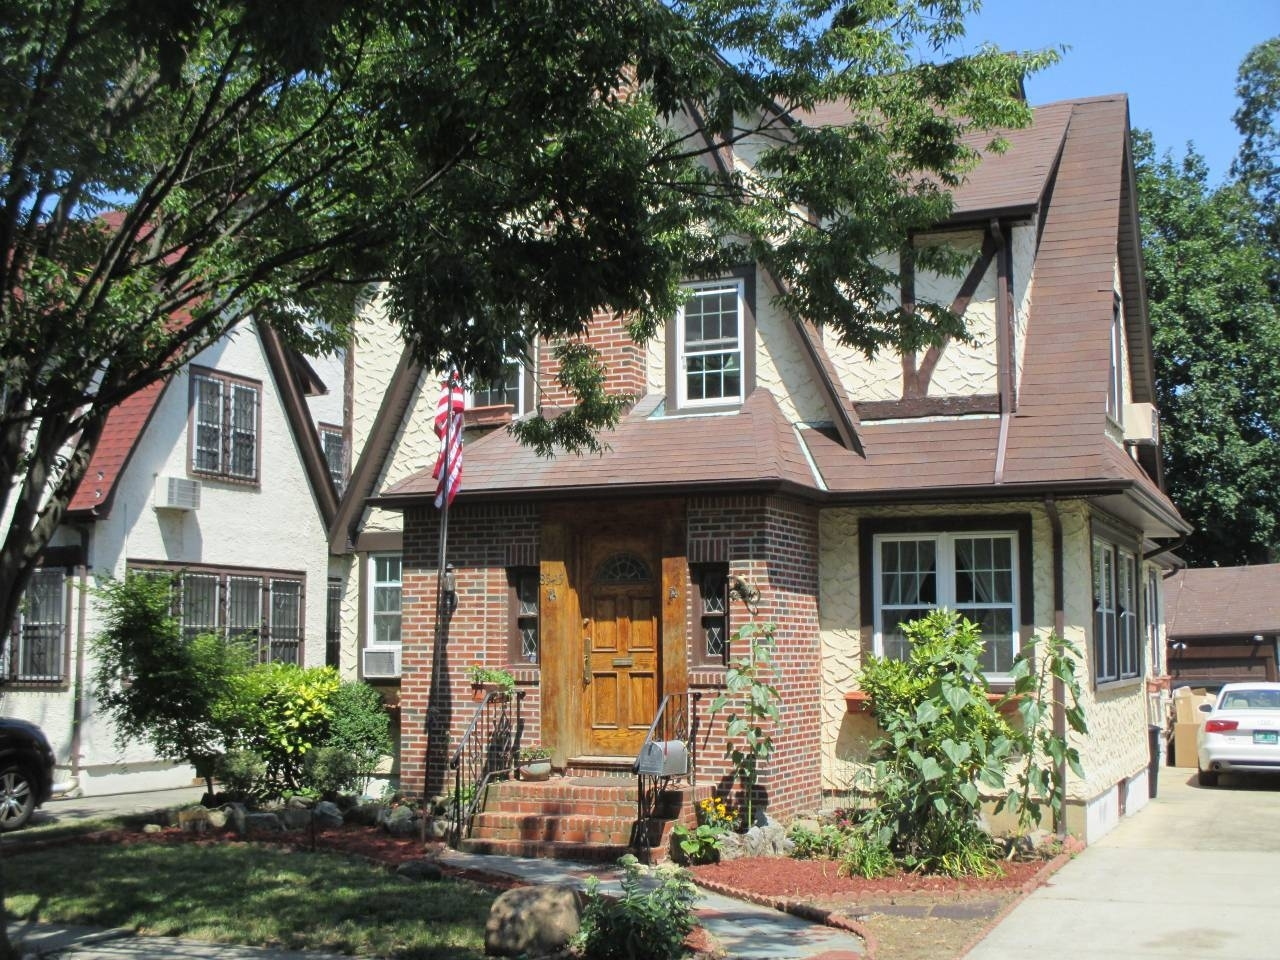 President Trump's childhood home up for rent on Airbnb